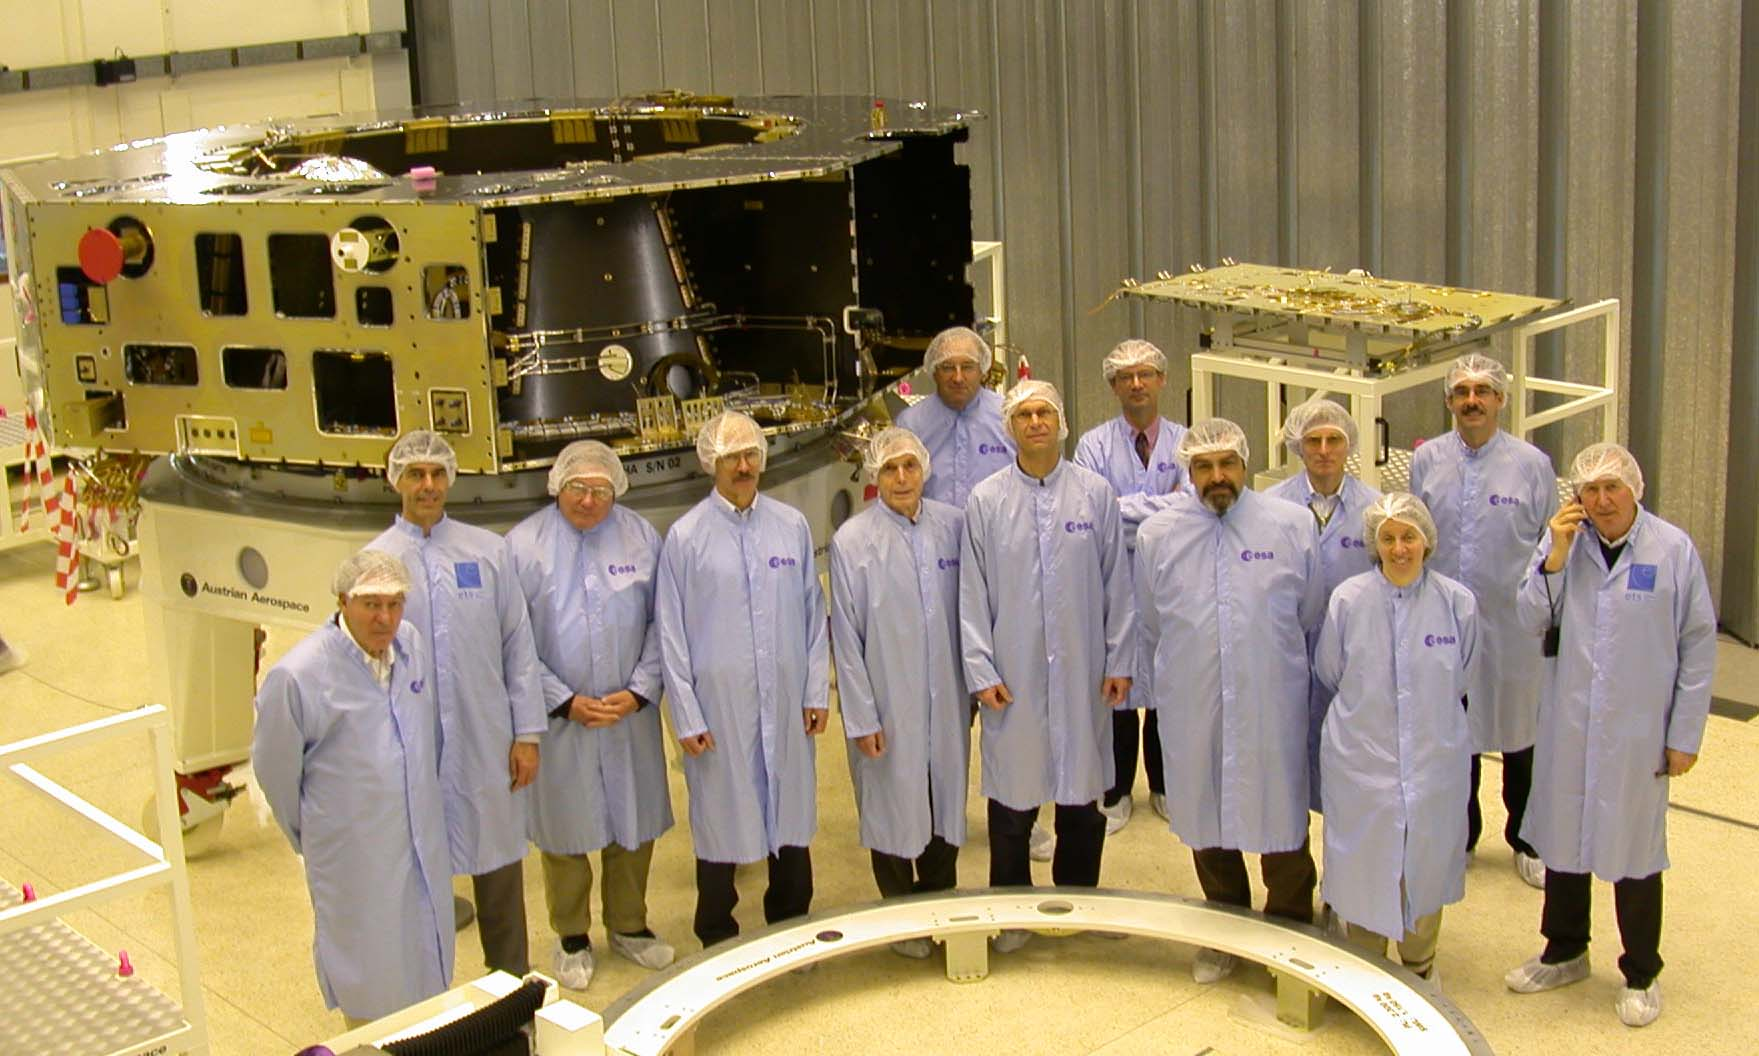 The Herschel Science Team during meeting #22 held on 27 April 2005 at ESTEC